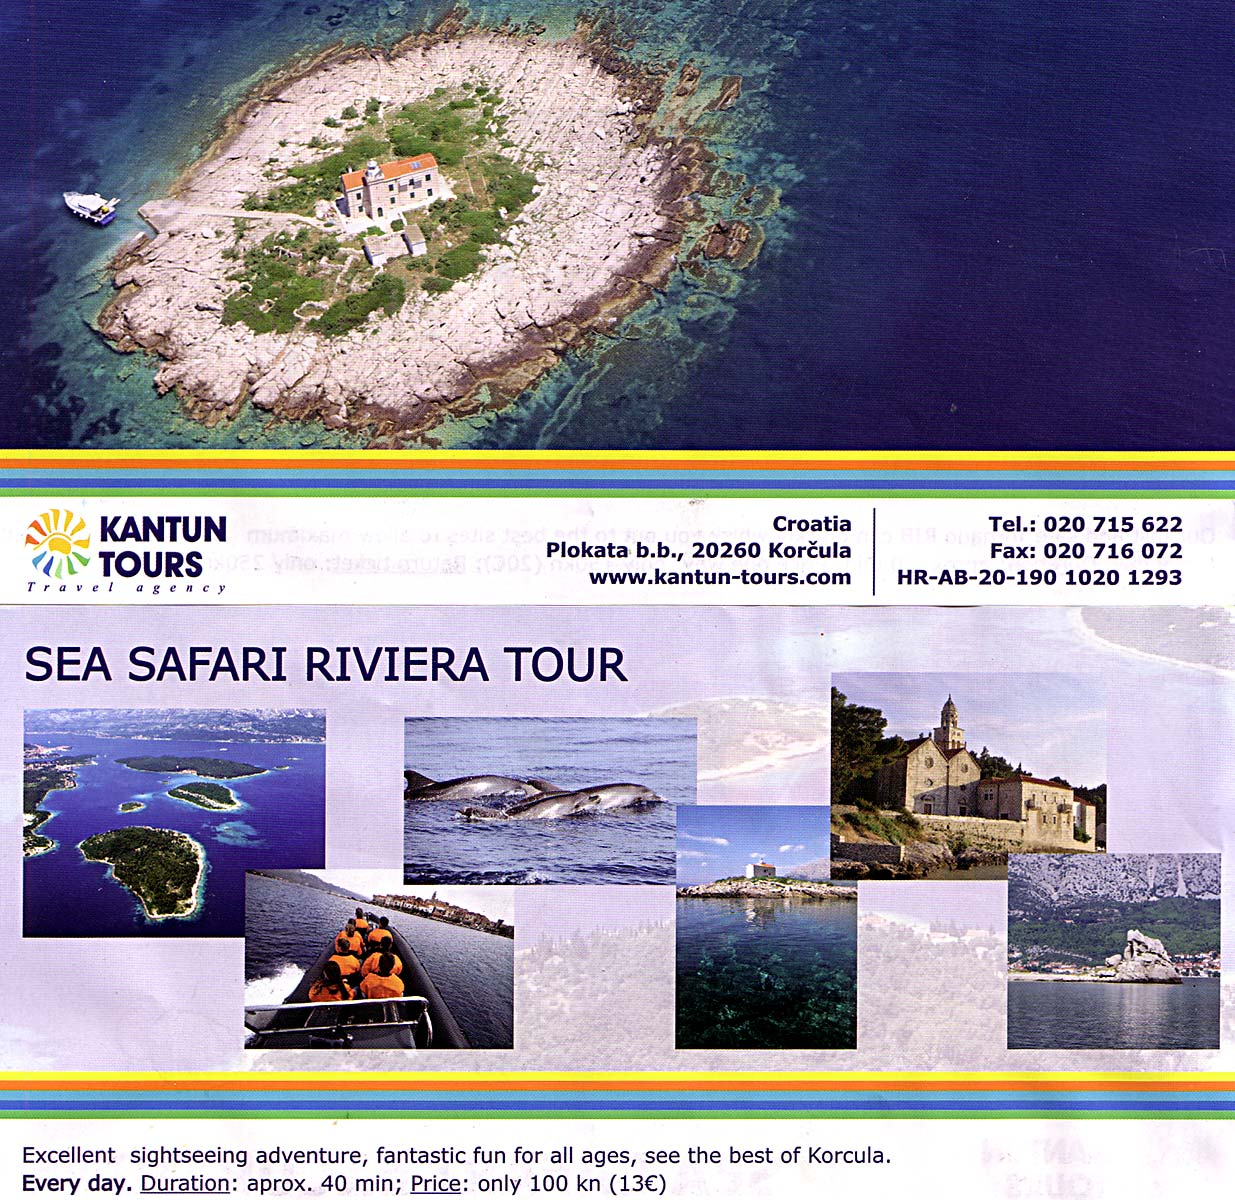 Sea Safari Riviera Tour around Korcula Archipelago